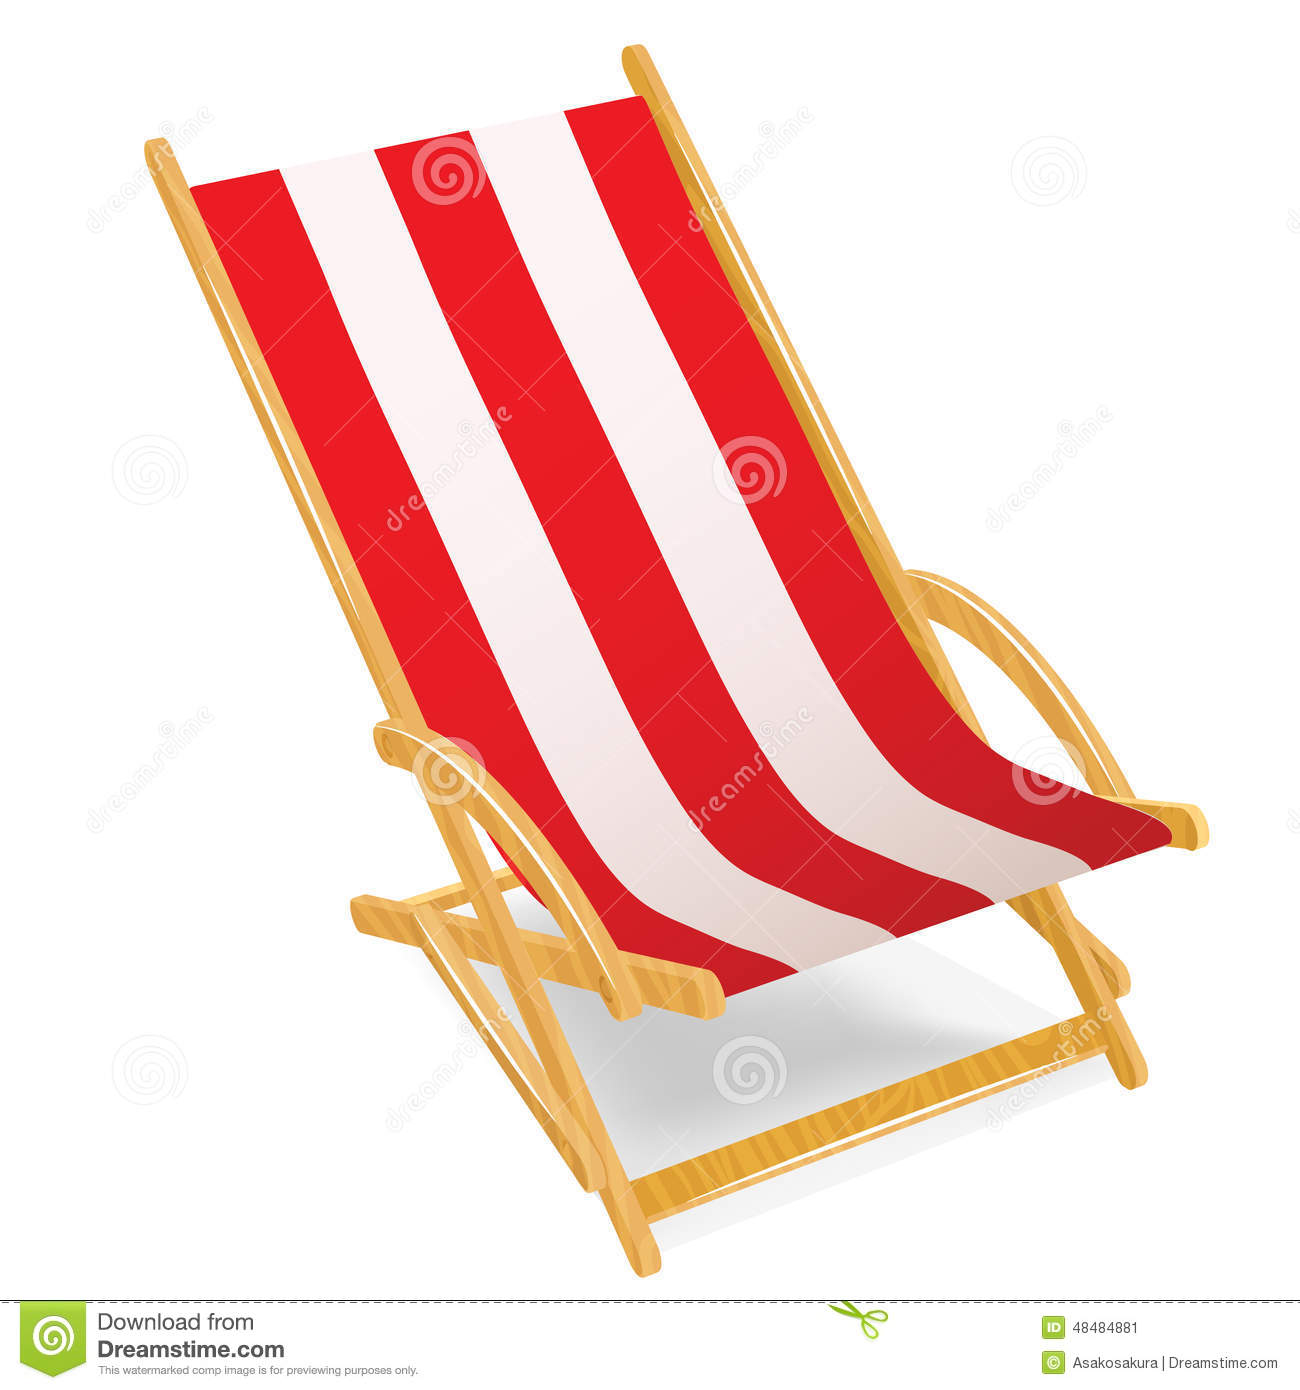 Wooden beach chaise longue isolated on white stock vector for Beach chaise longue